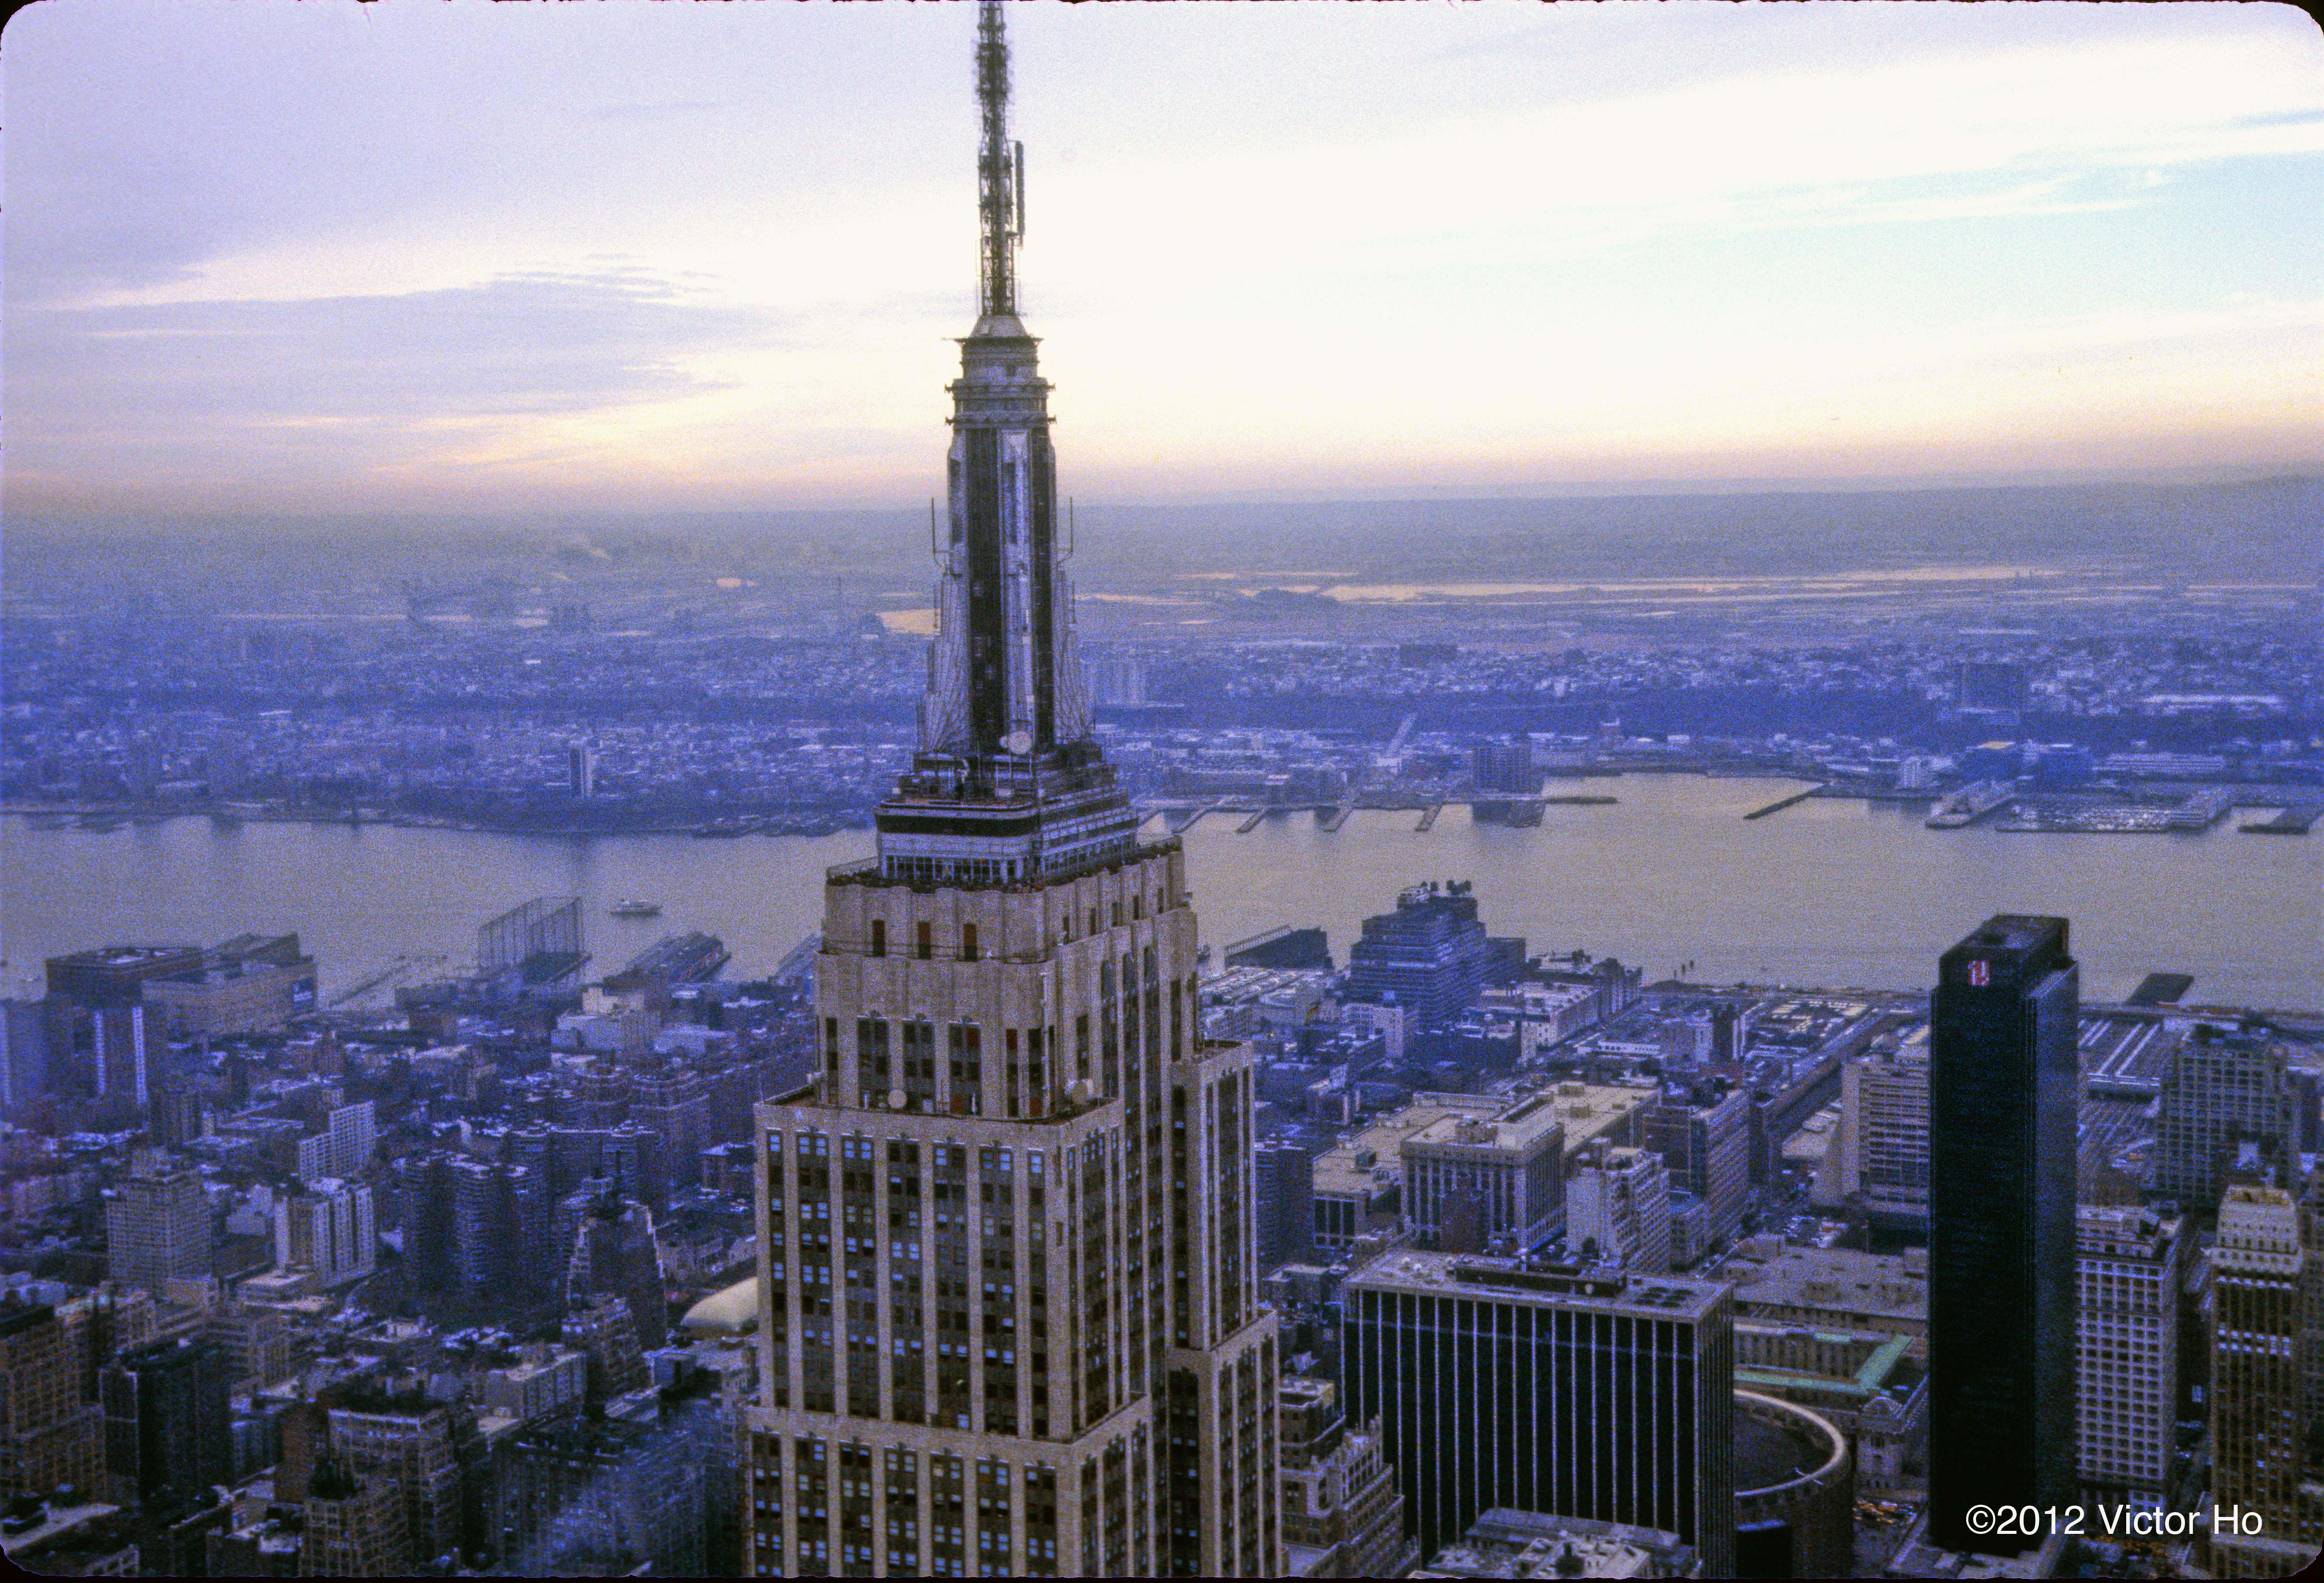 King Kong Empire State Building Aerial View